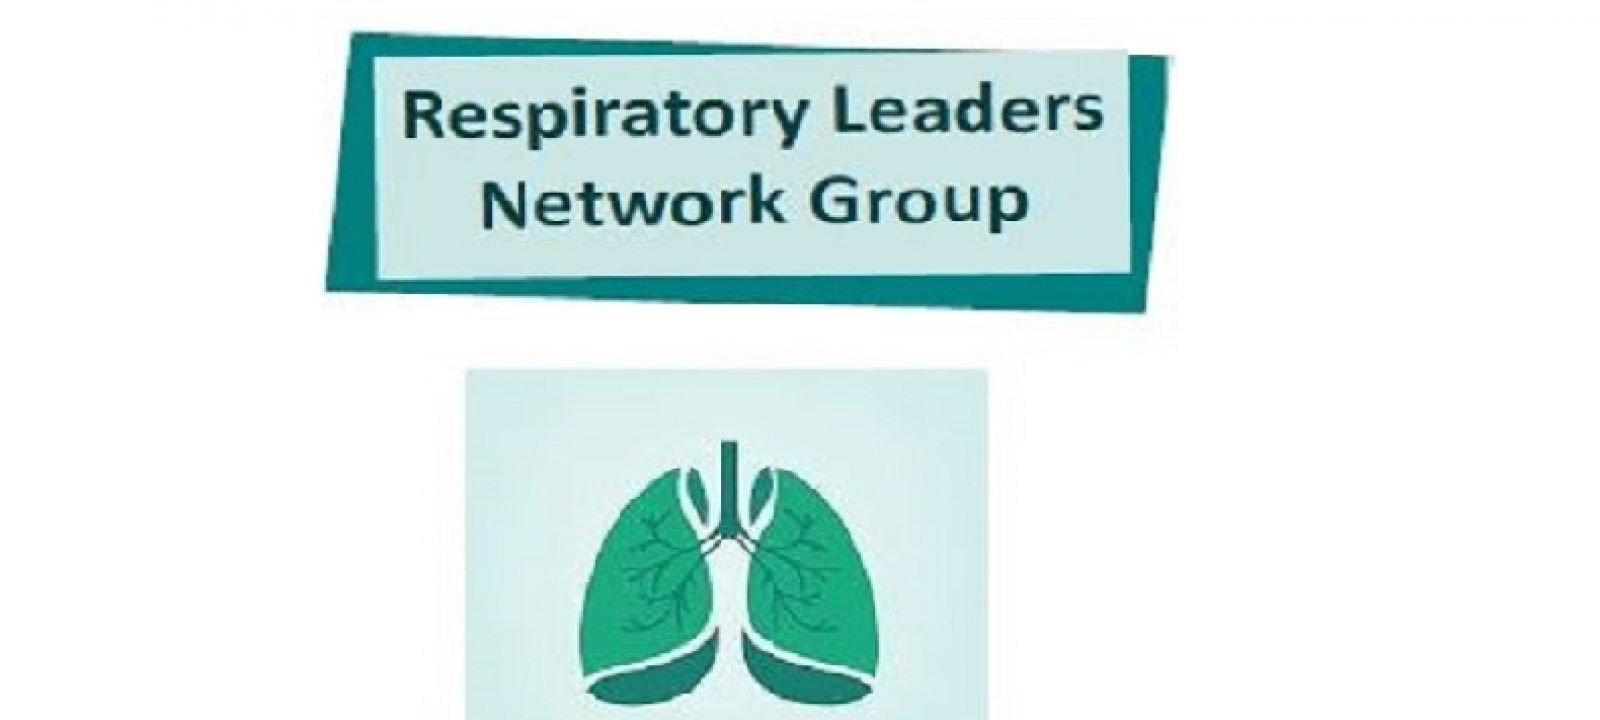 The Respiratory Leaders Network